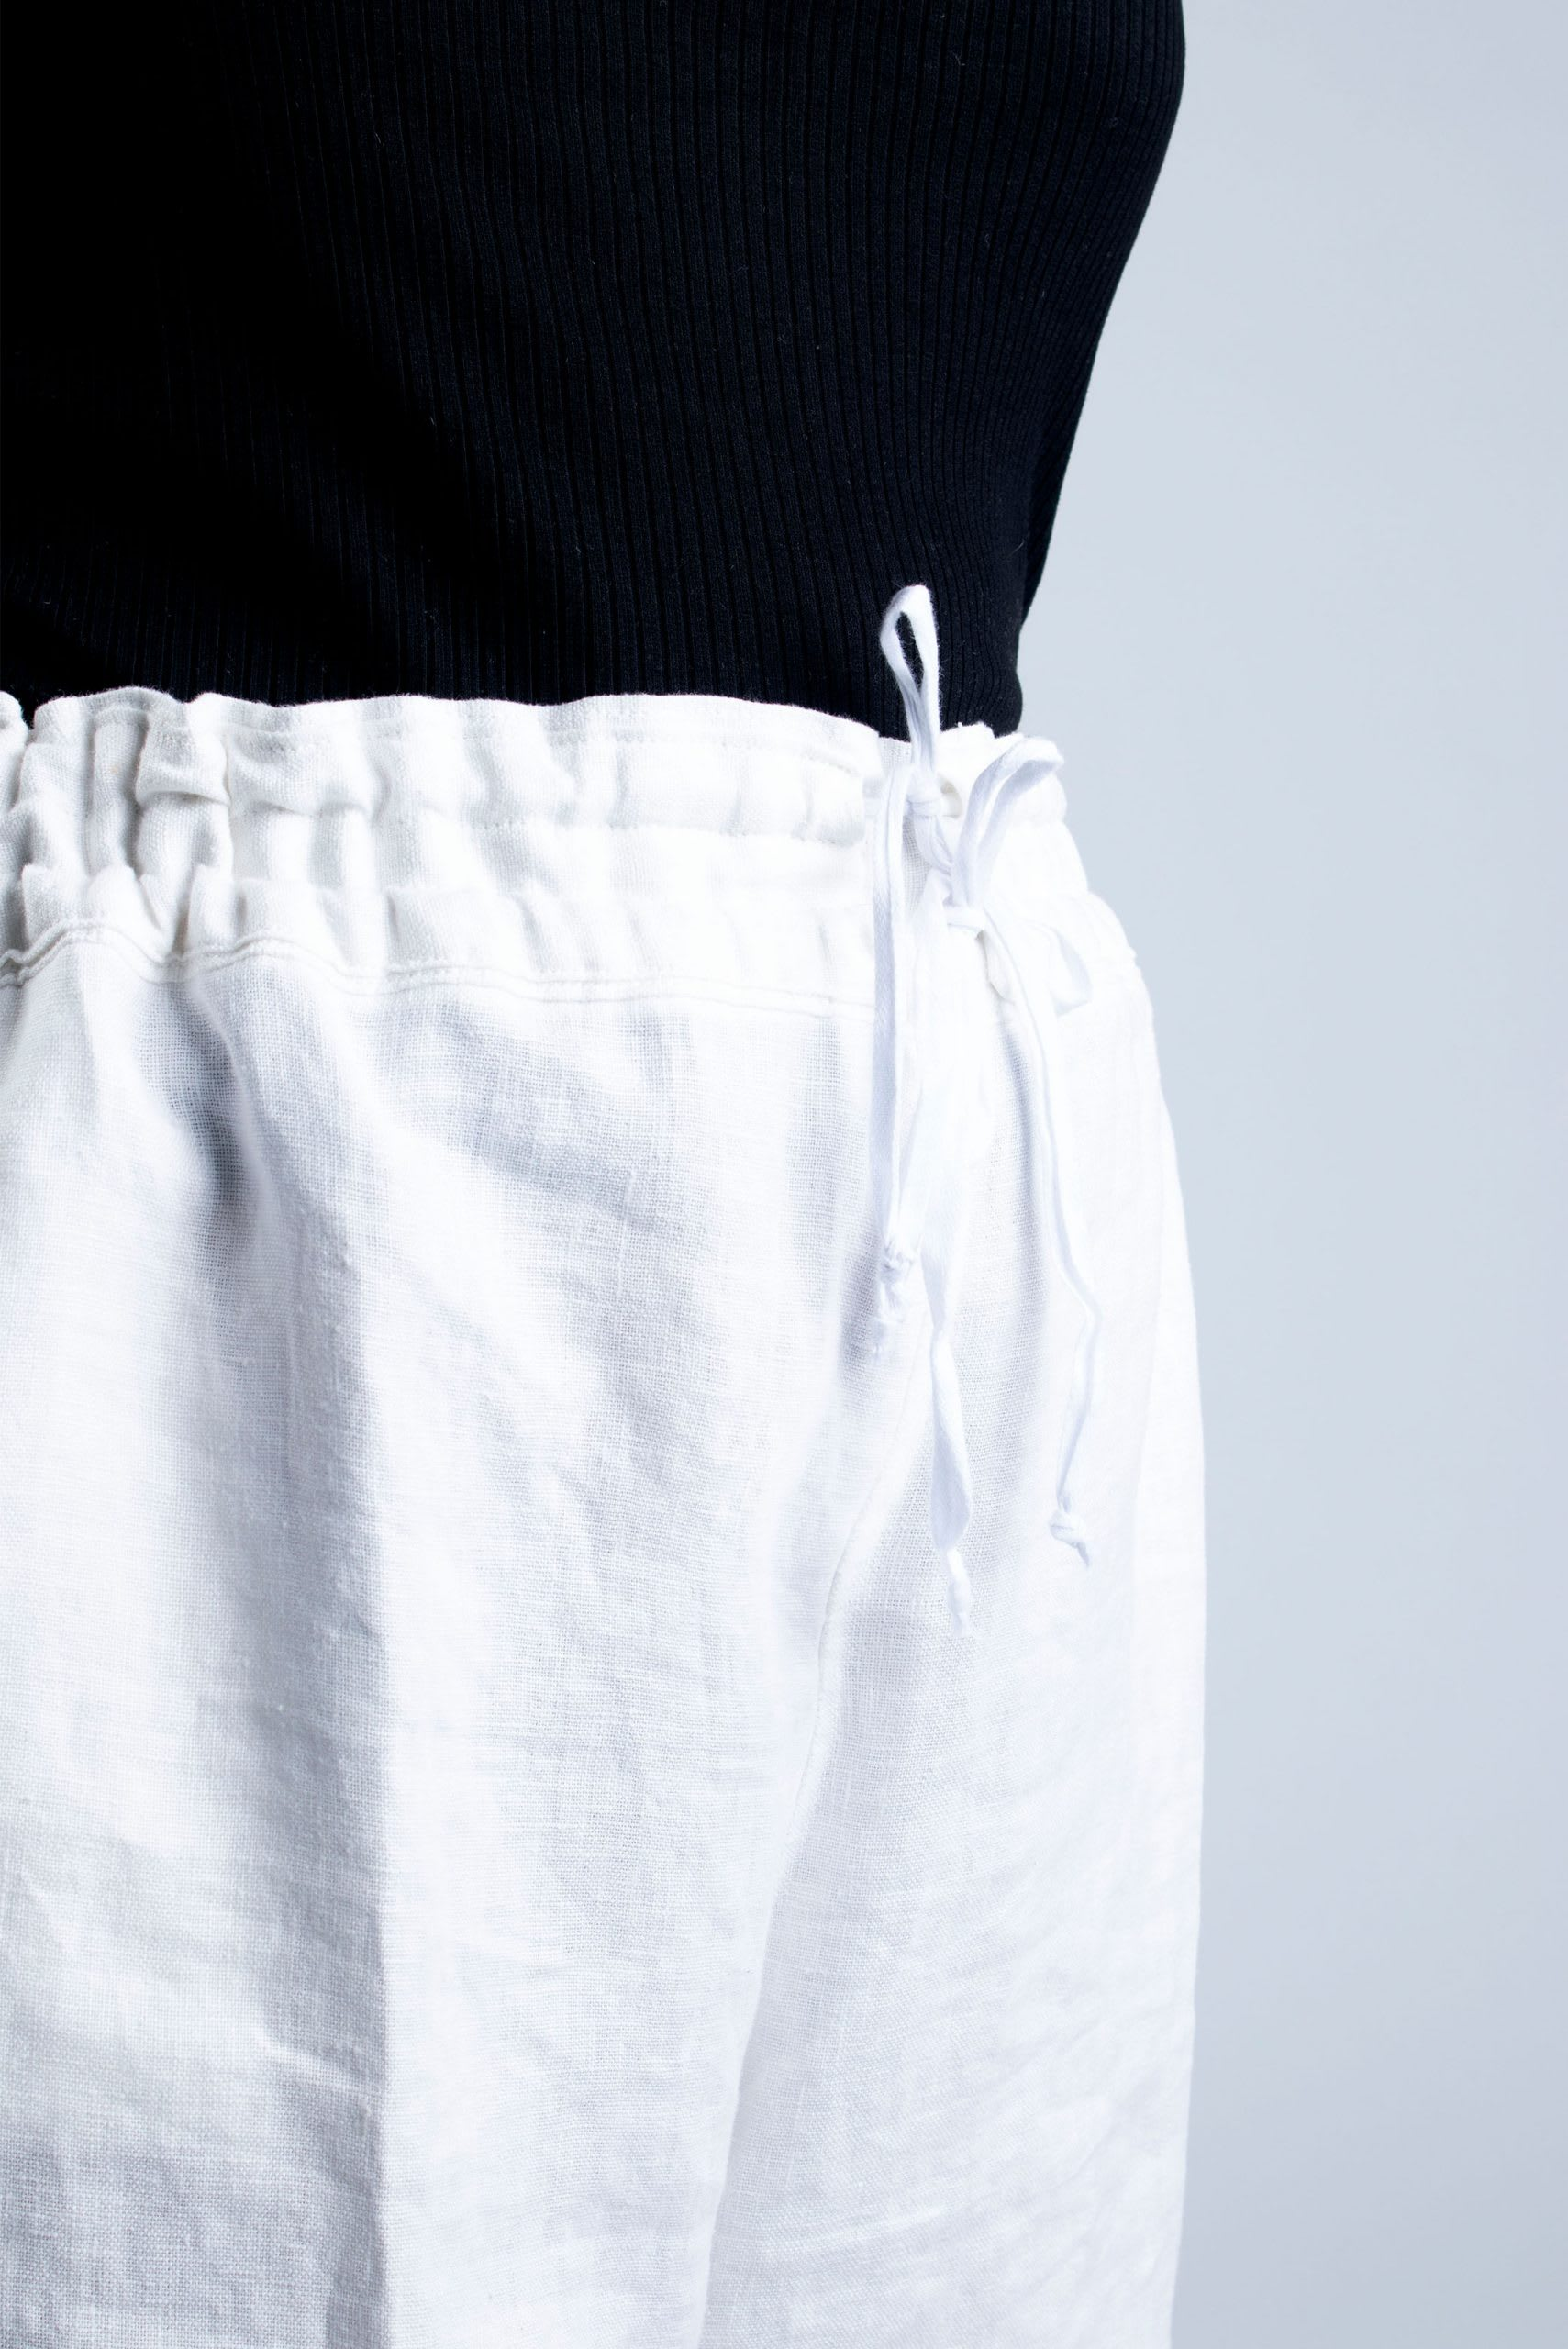 detail of drawstring on white linen shorts